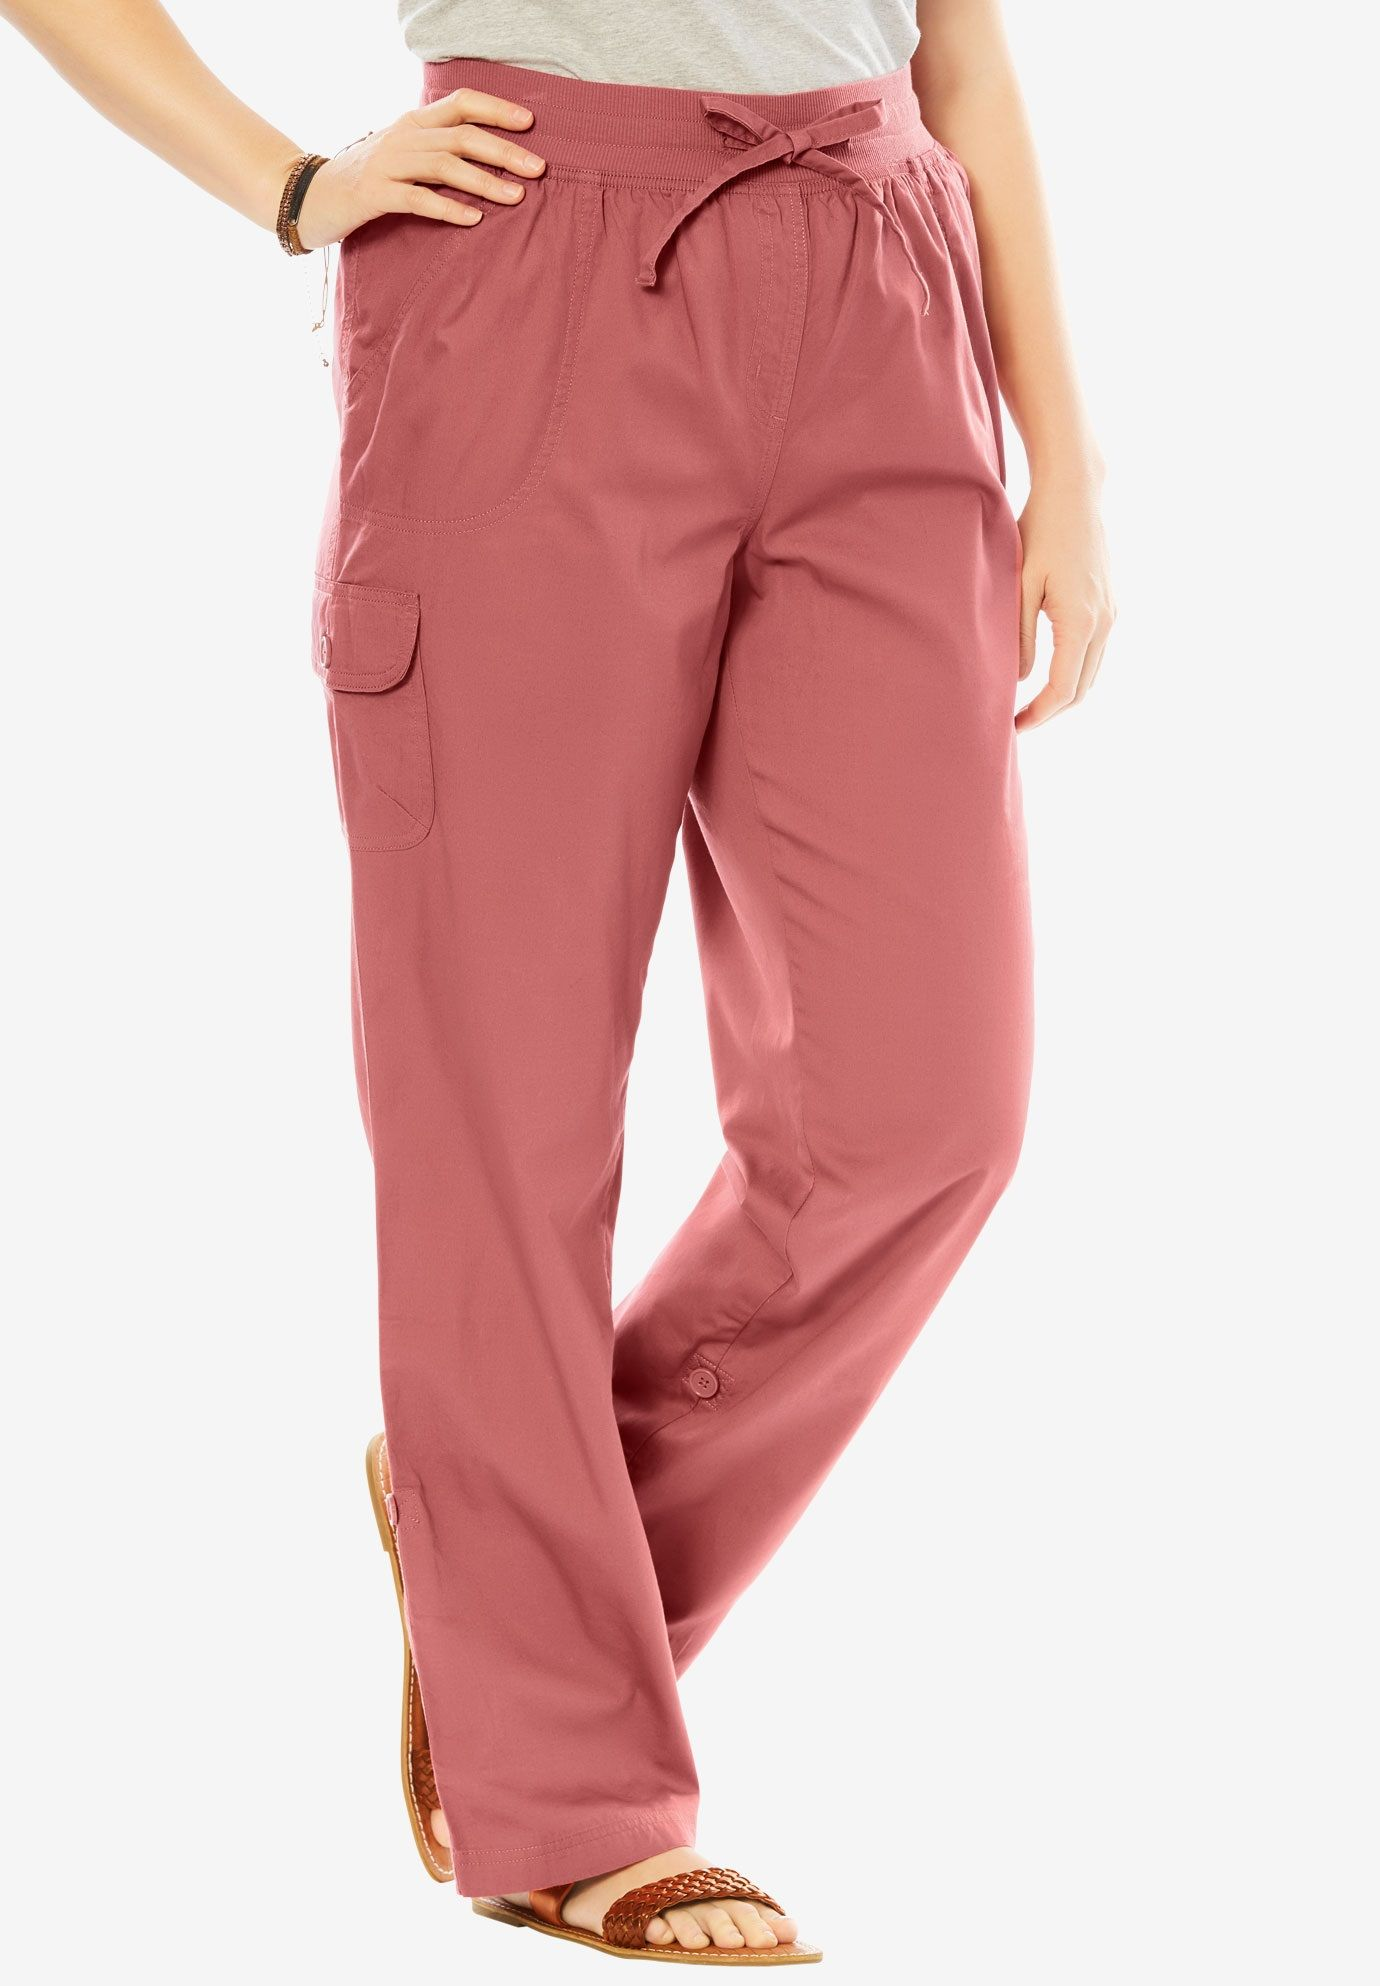 221213e29a247 Petite convertible cargo pants - Women s Plus Size Clothing. Woman Within®  Pants with Convertible Length